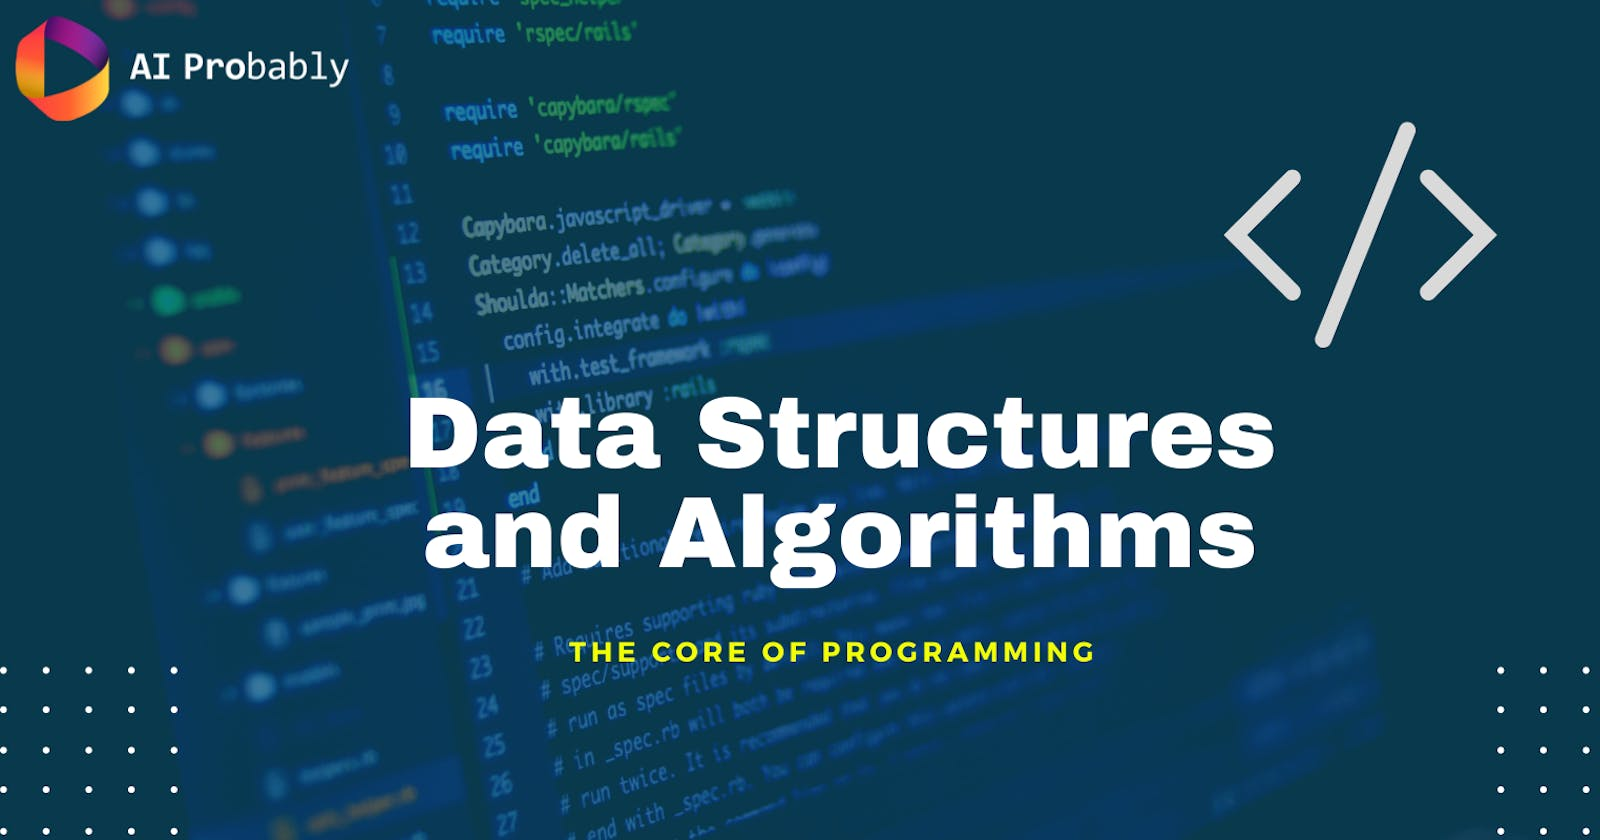 How to start with Data Structures and Algorithms